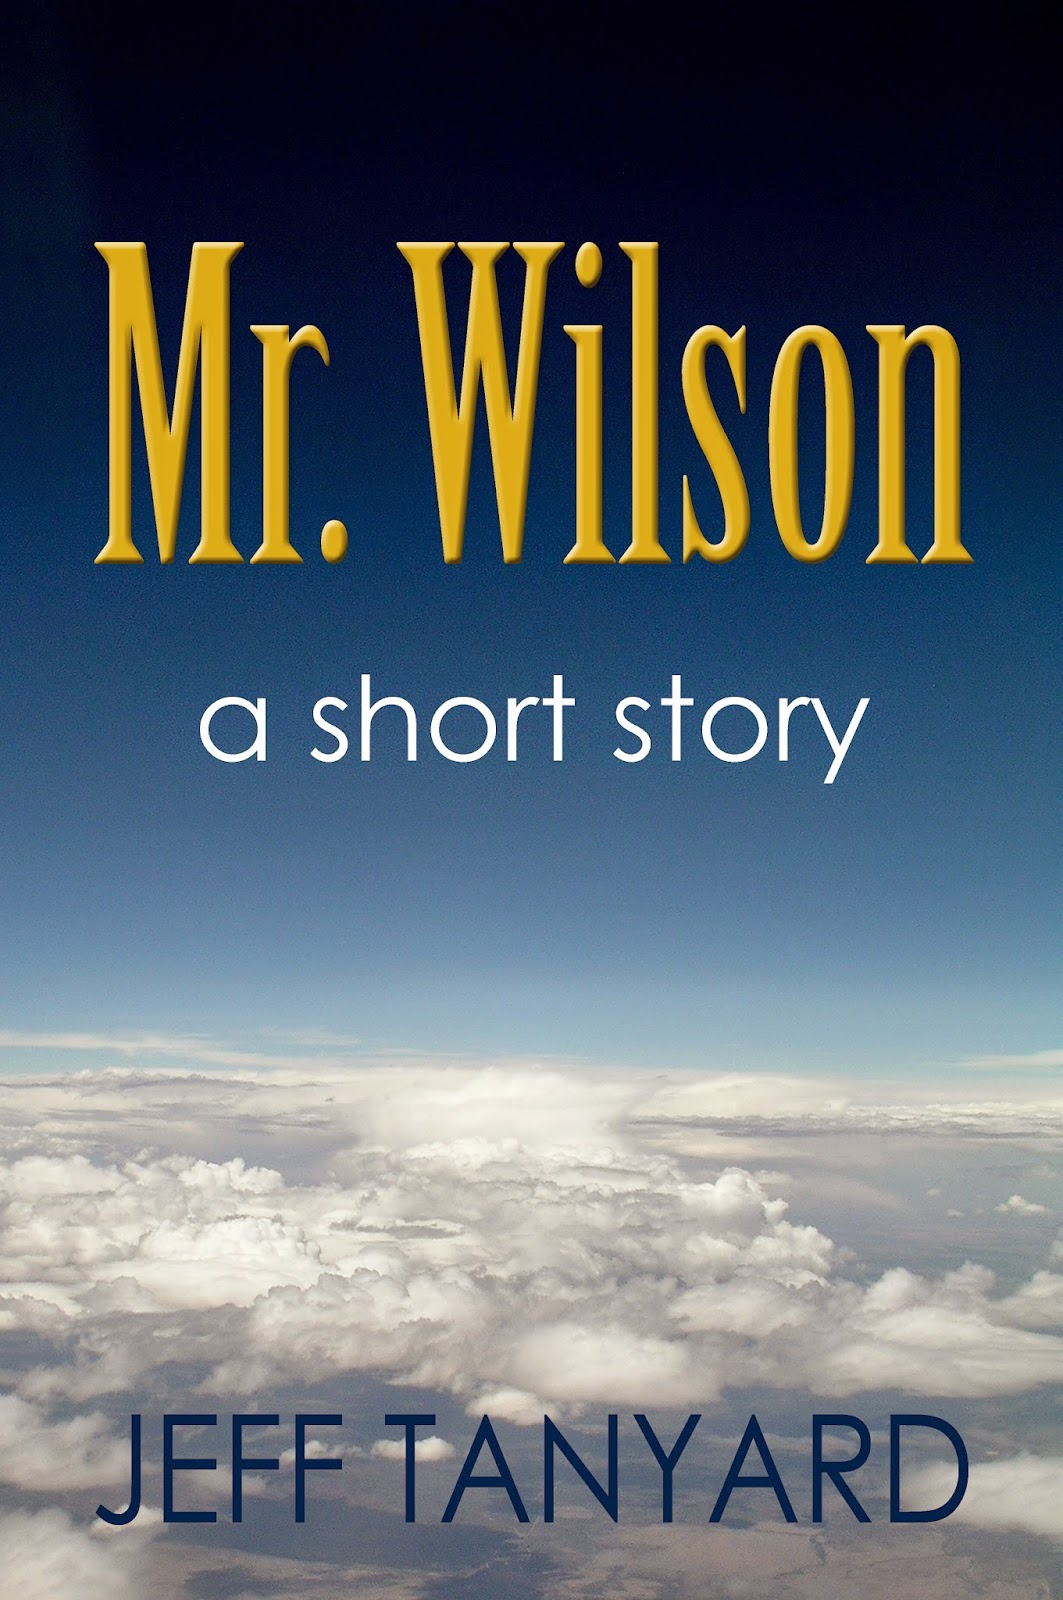 http://www.amazon.com/Mr-Wilson-Jeff-Tanyard-ebook/dp/B00P86K4WA/ref=sr_1_2?s=digital-text&ie=UTF8&qid=1416285957&sr=1-2